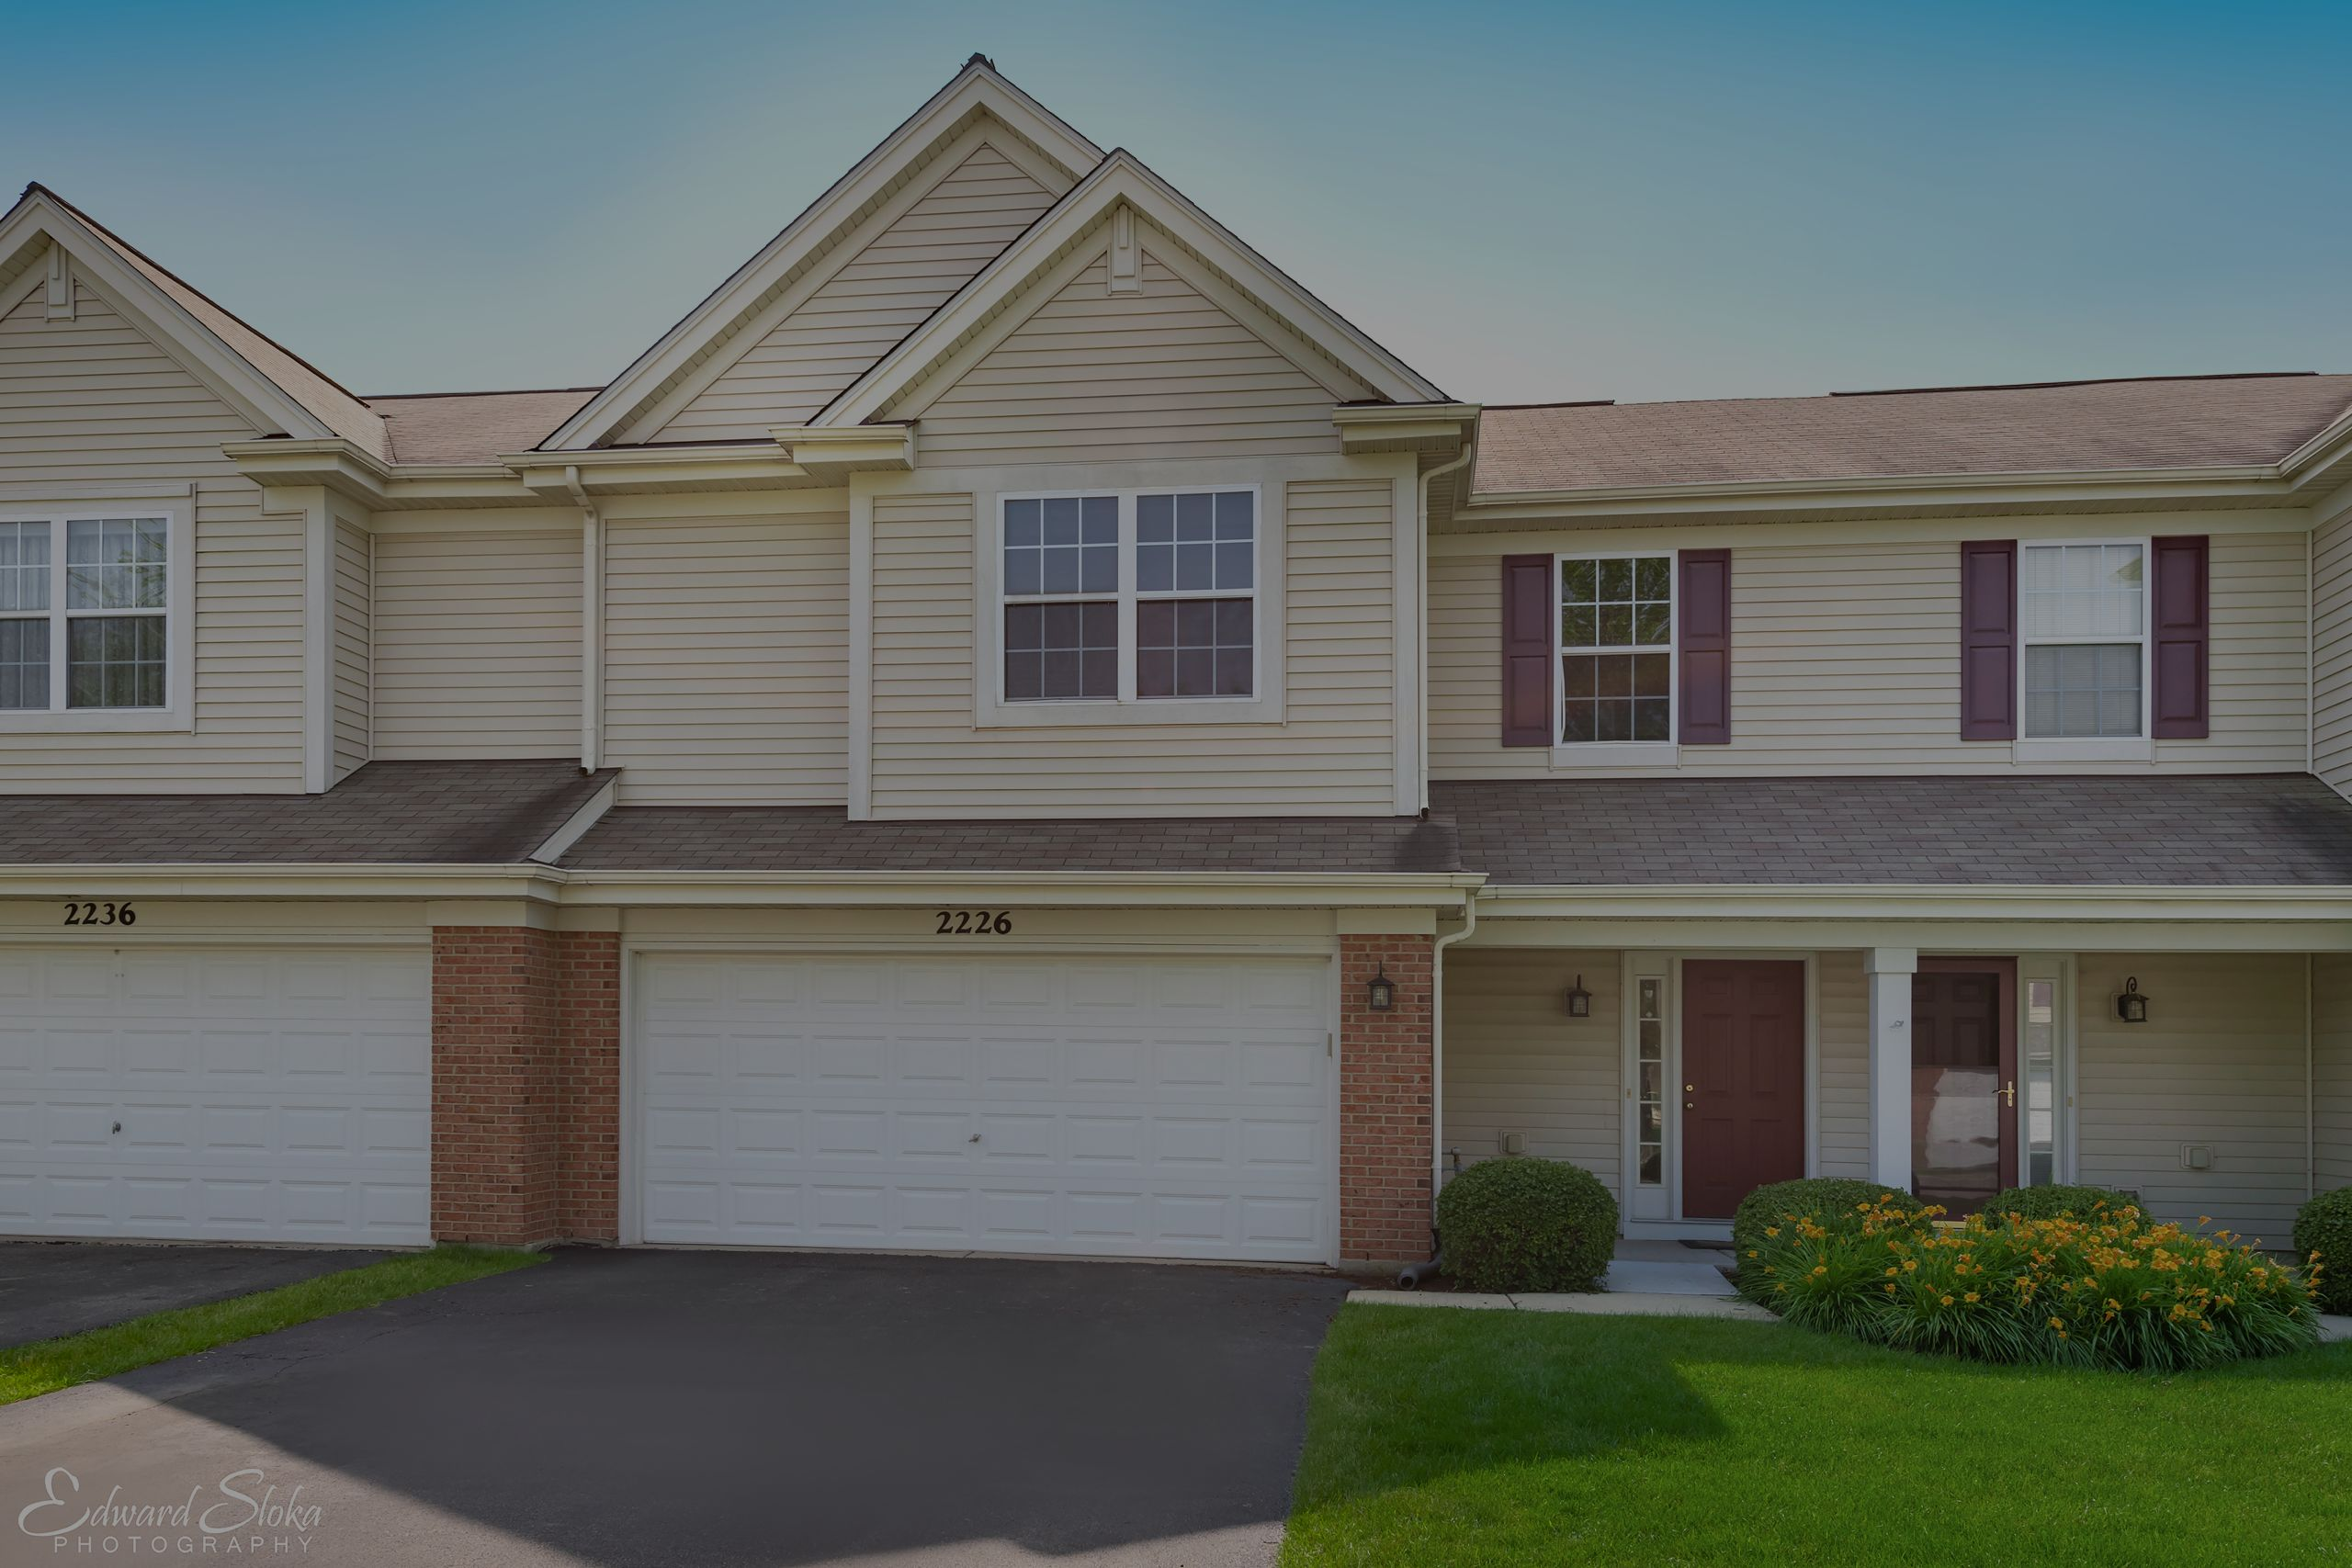 2226 Pembridge, Lake in the Hills $192,500 2 Bed 2 Bath Townhouse with Huntley Schools!